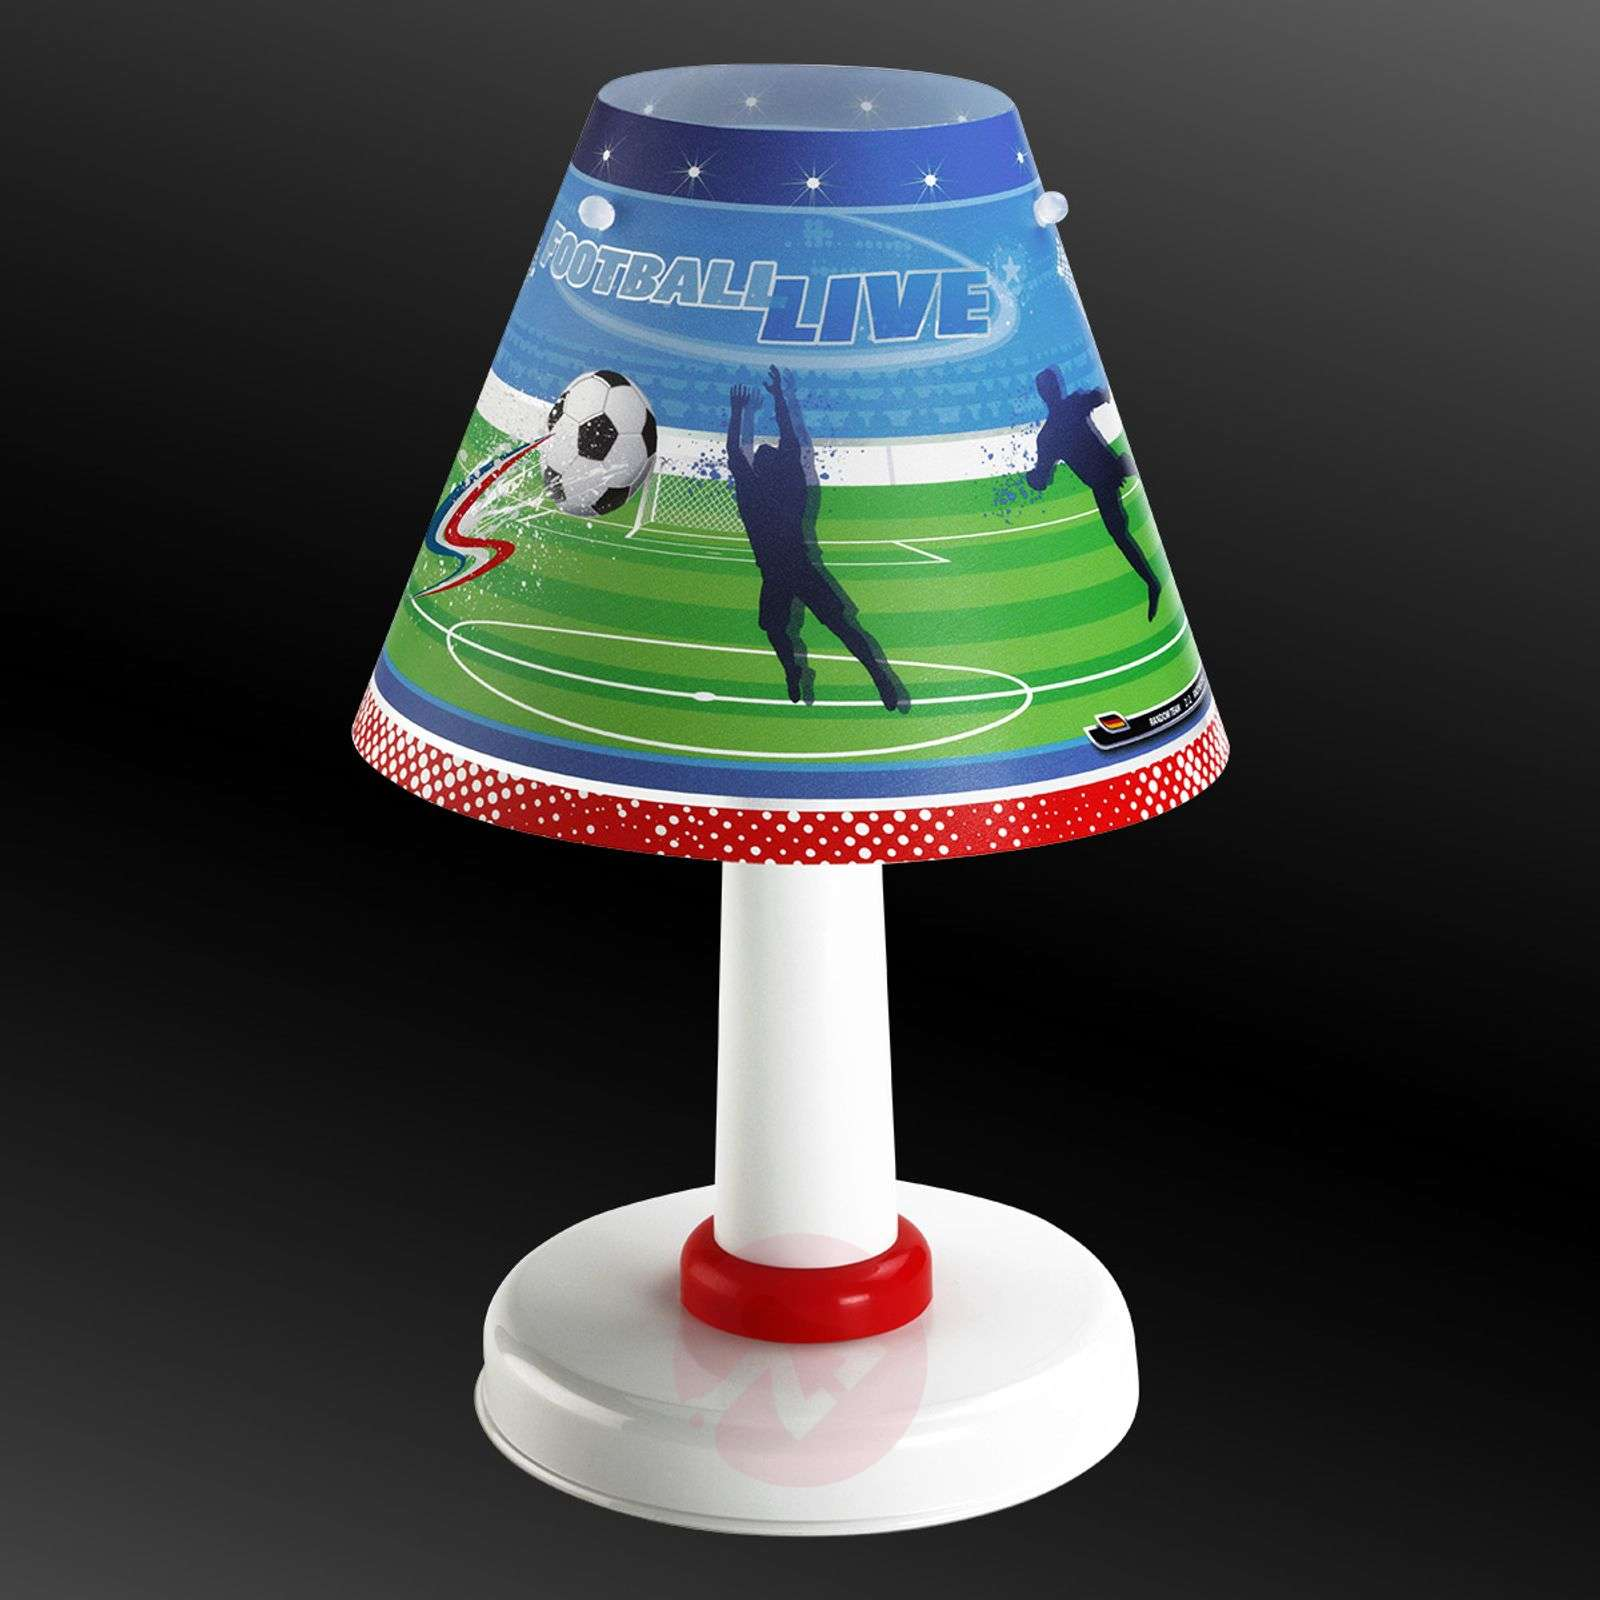 Children's room table lamp Football